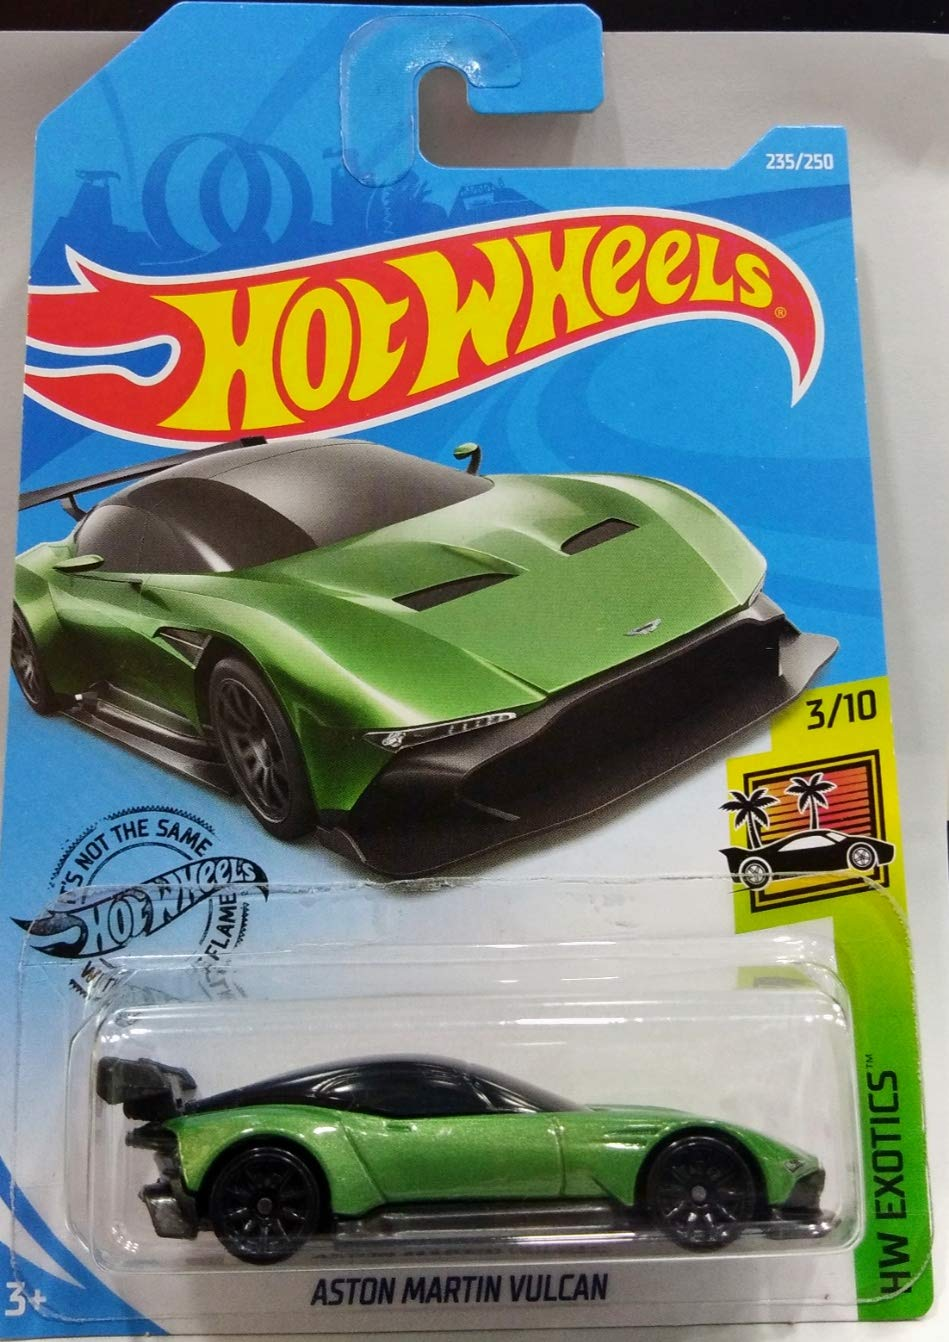 Buy Hot Wheels Aston Martin Vulcan 235 250 Exclusive By Tiny Toes Online At Low Prices In India Amazon In